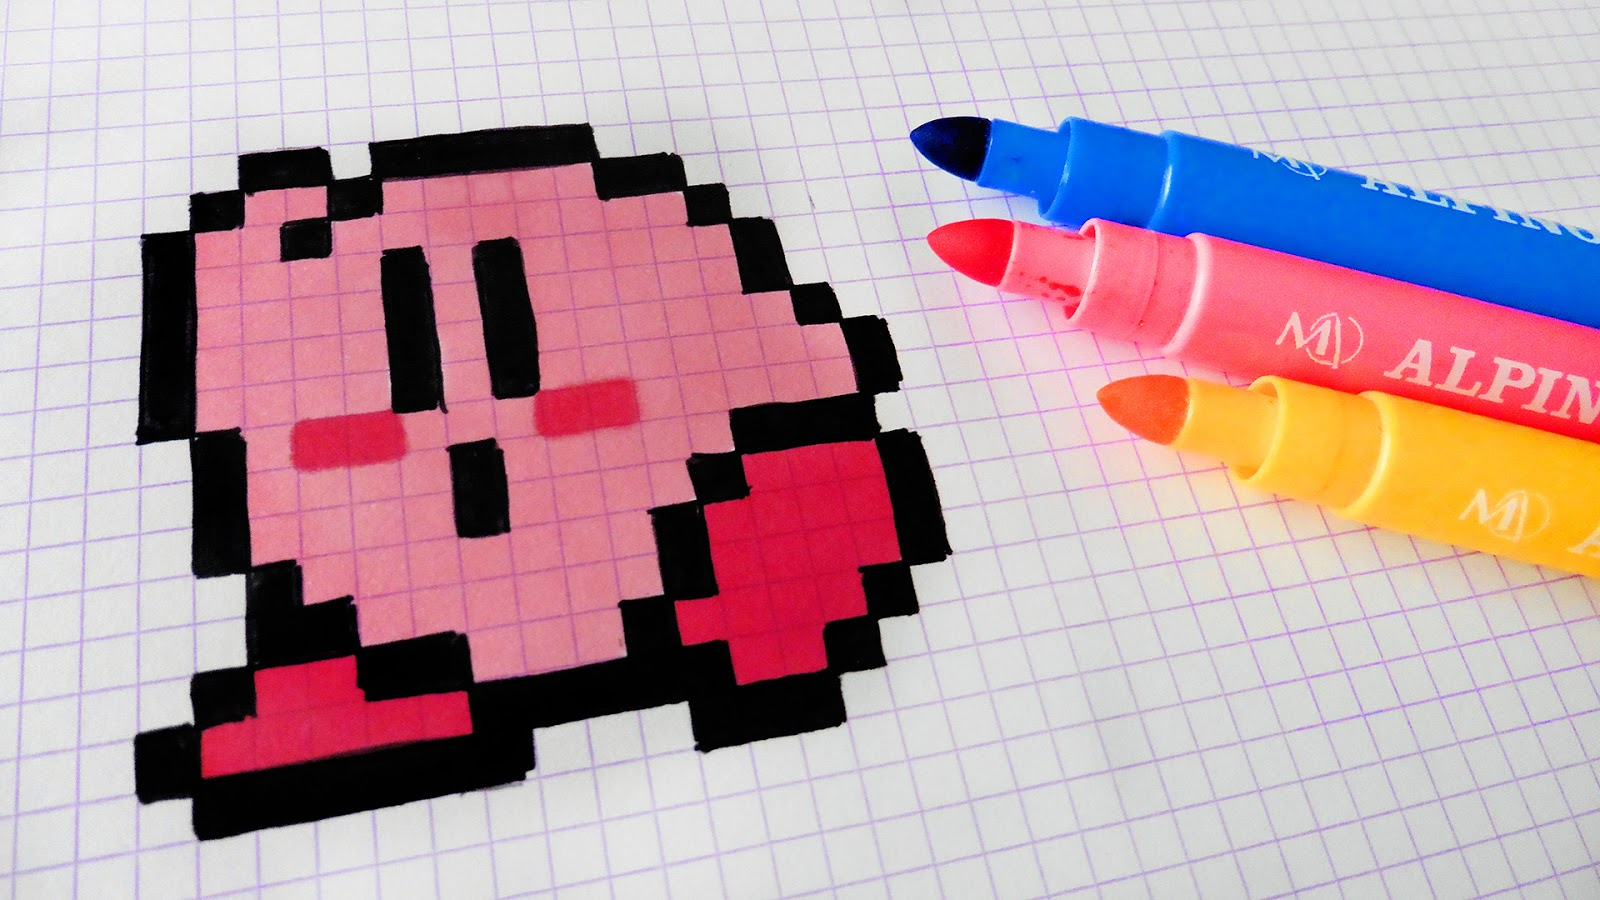 Drawn pixel art kawaii Draw Art To To Hello